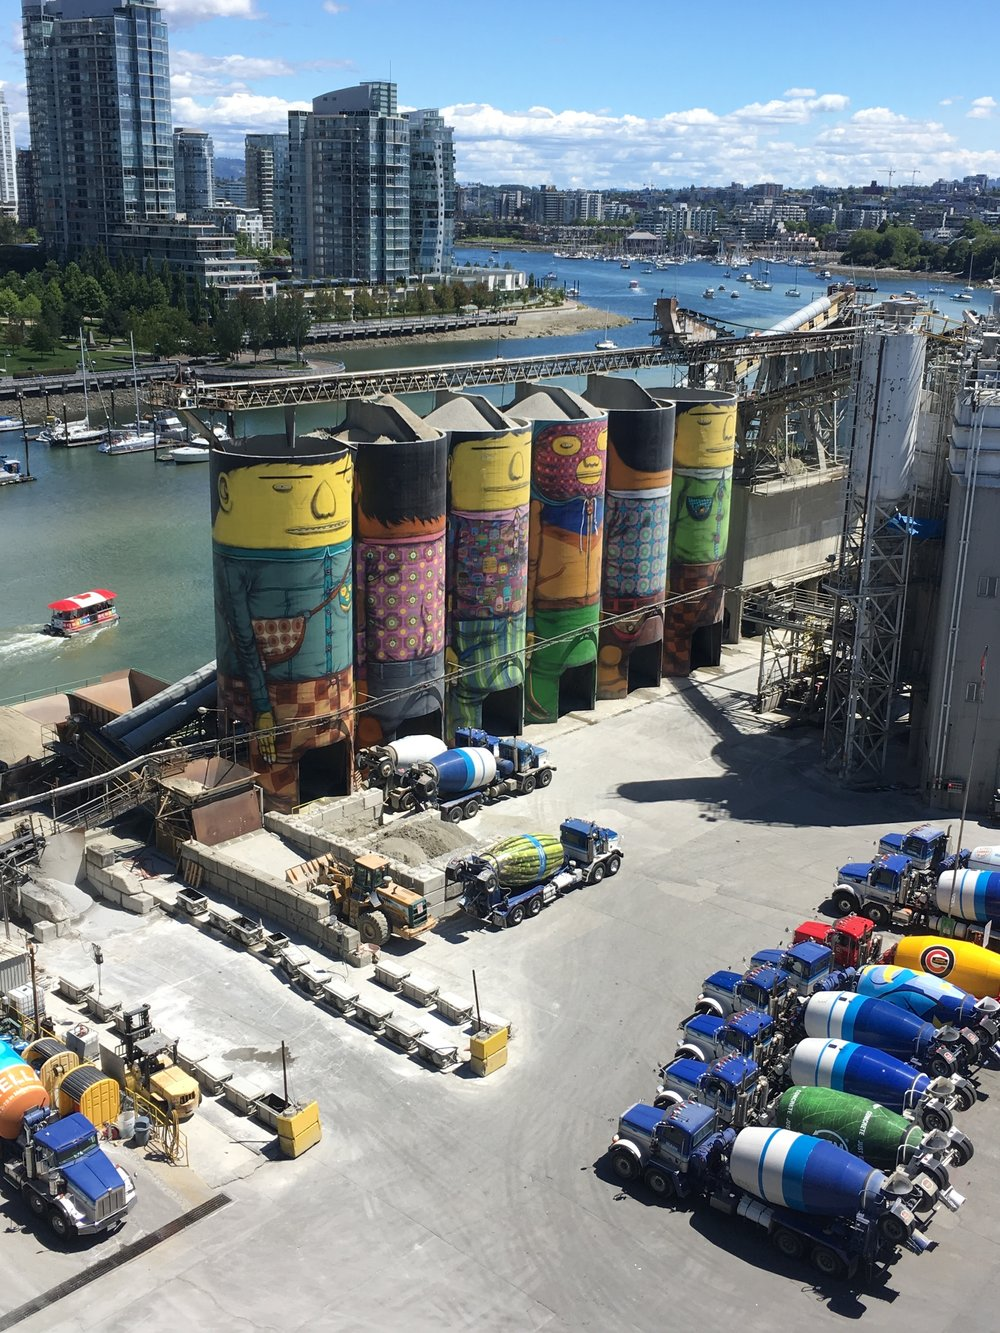 Granville Island from above